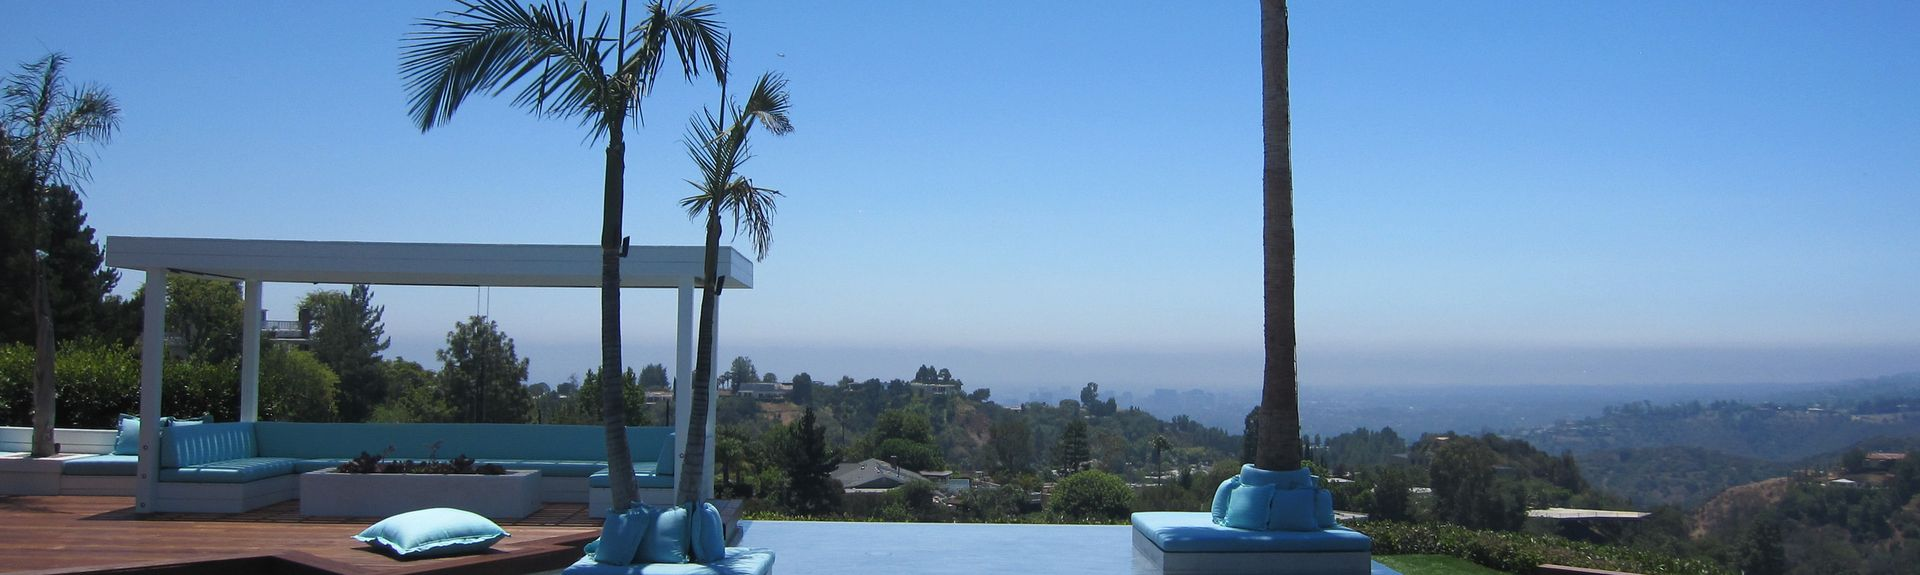 Trousdale Estates, Beverly Hills, CA, USA